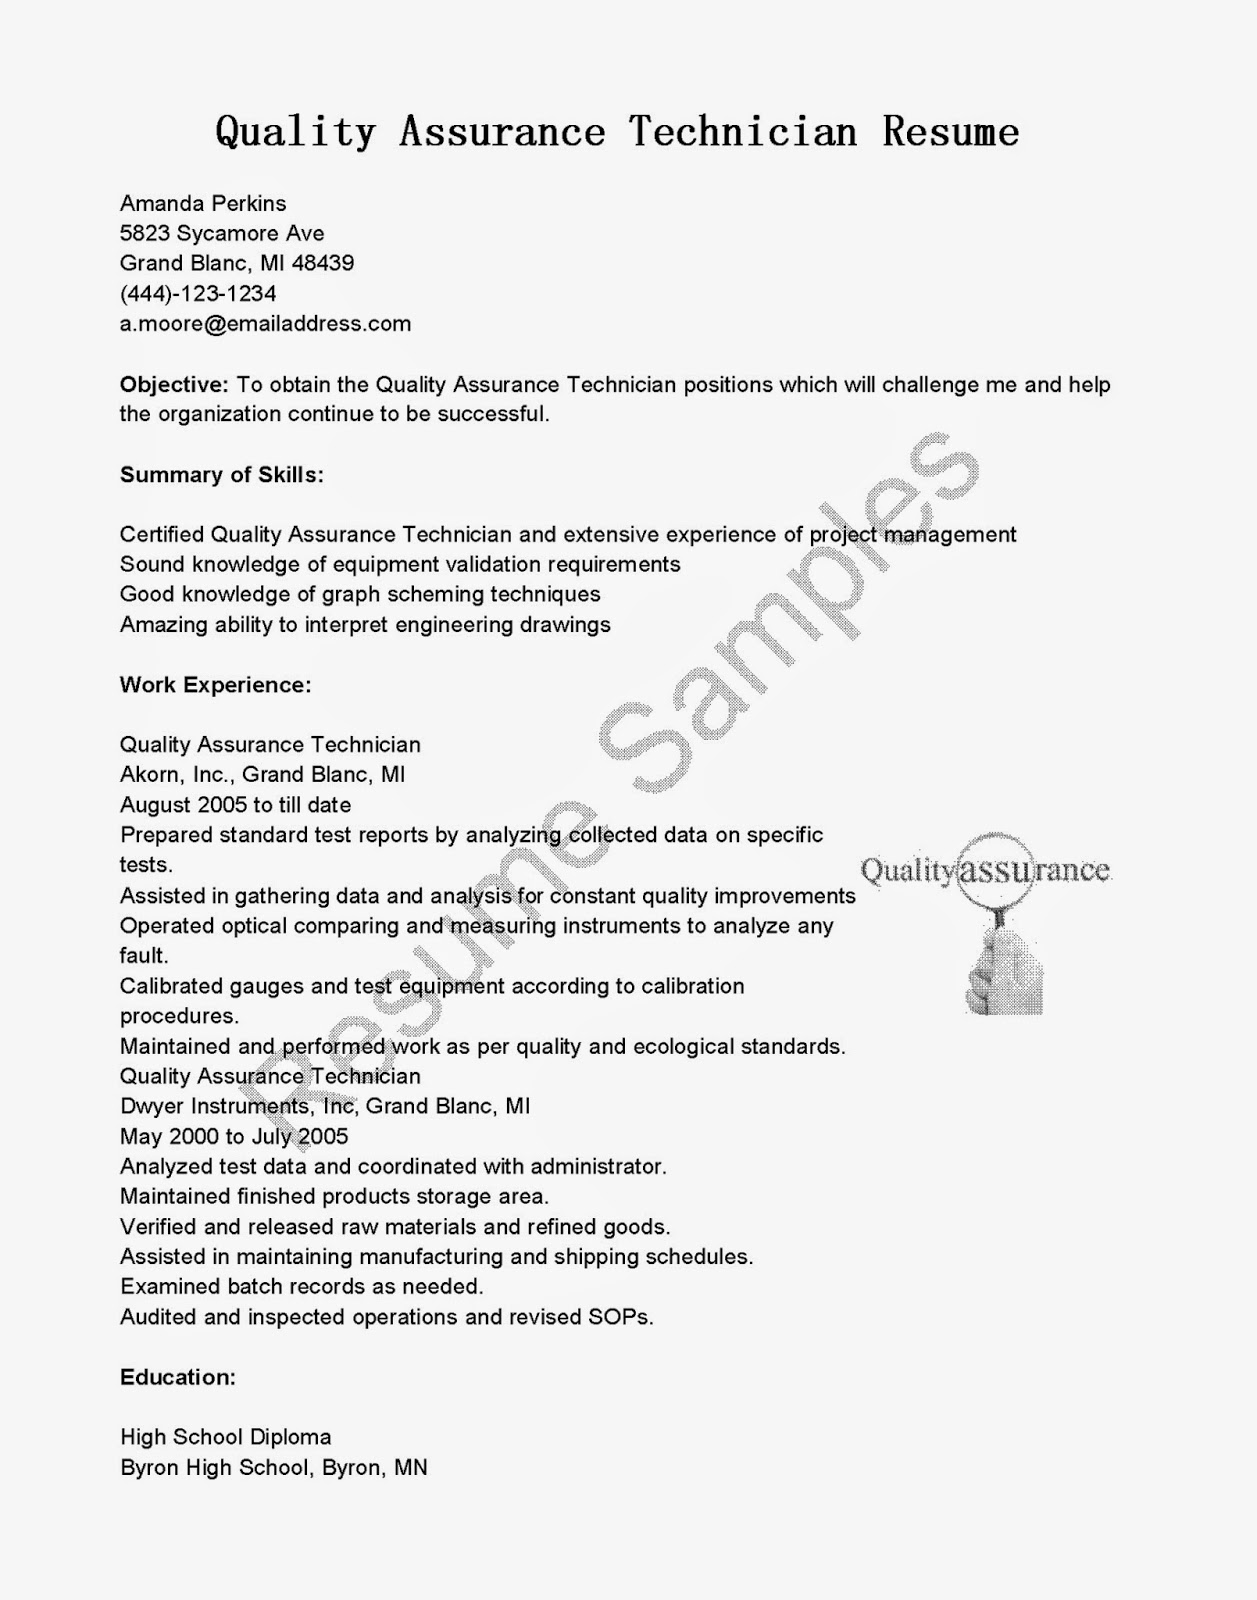 Resume Samples Quality Assurance Technician Sample